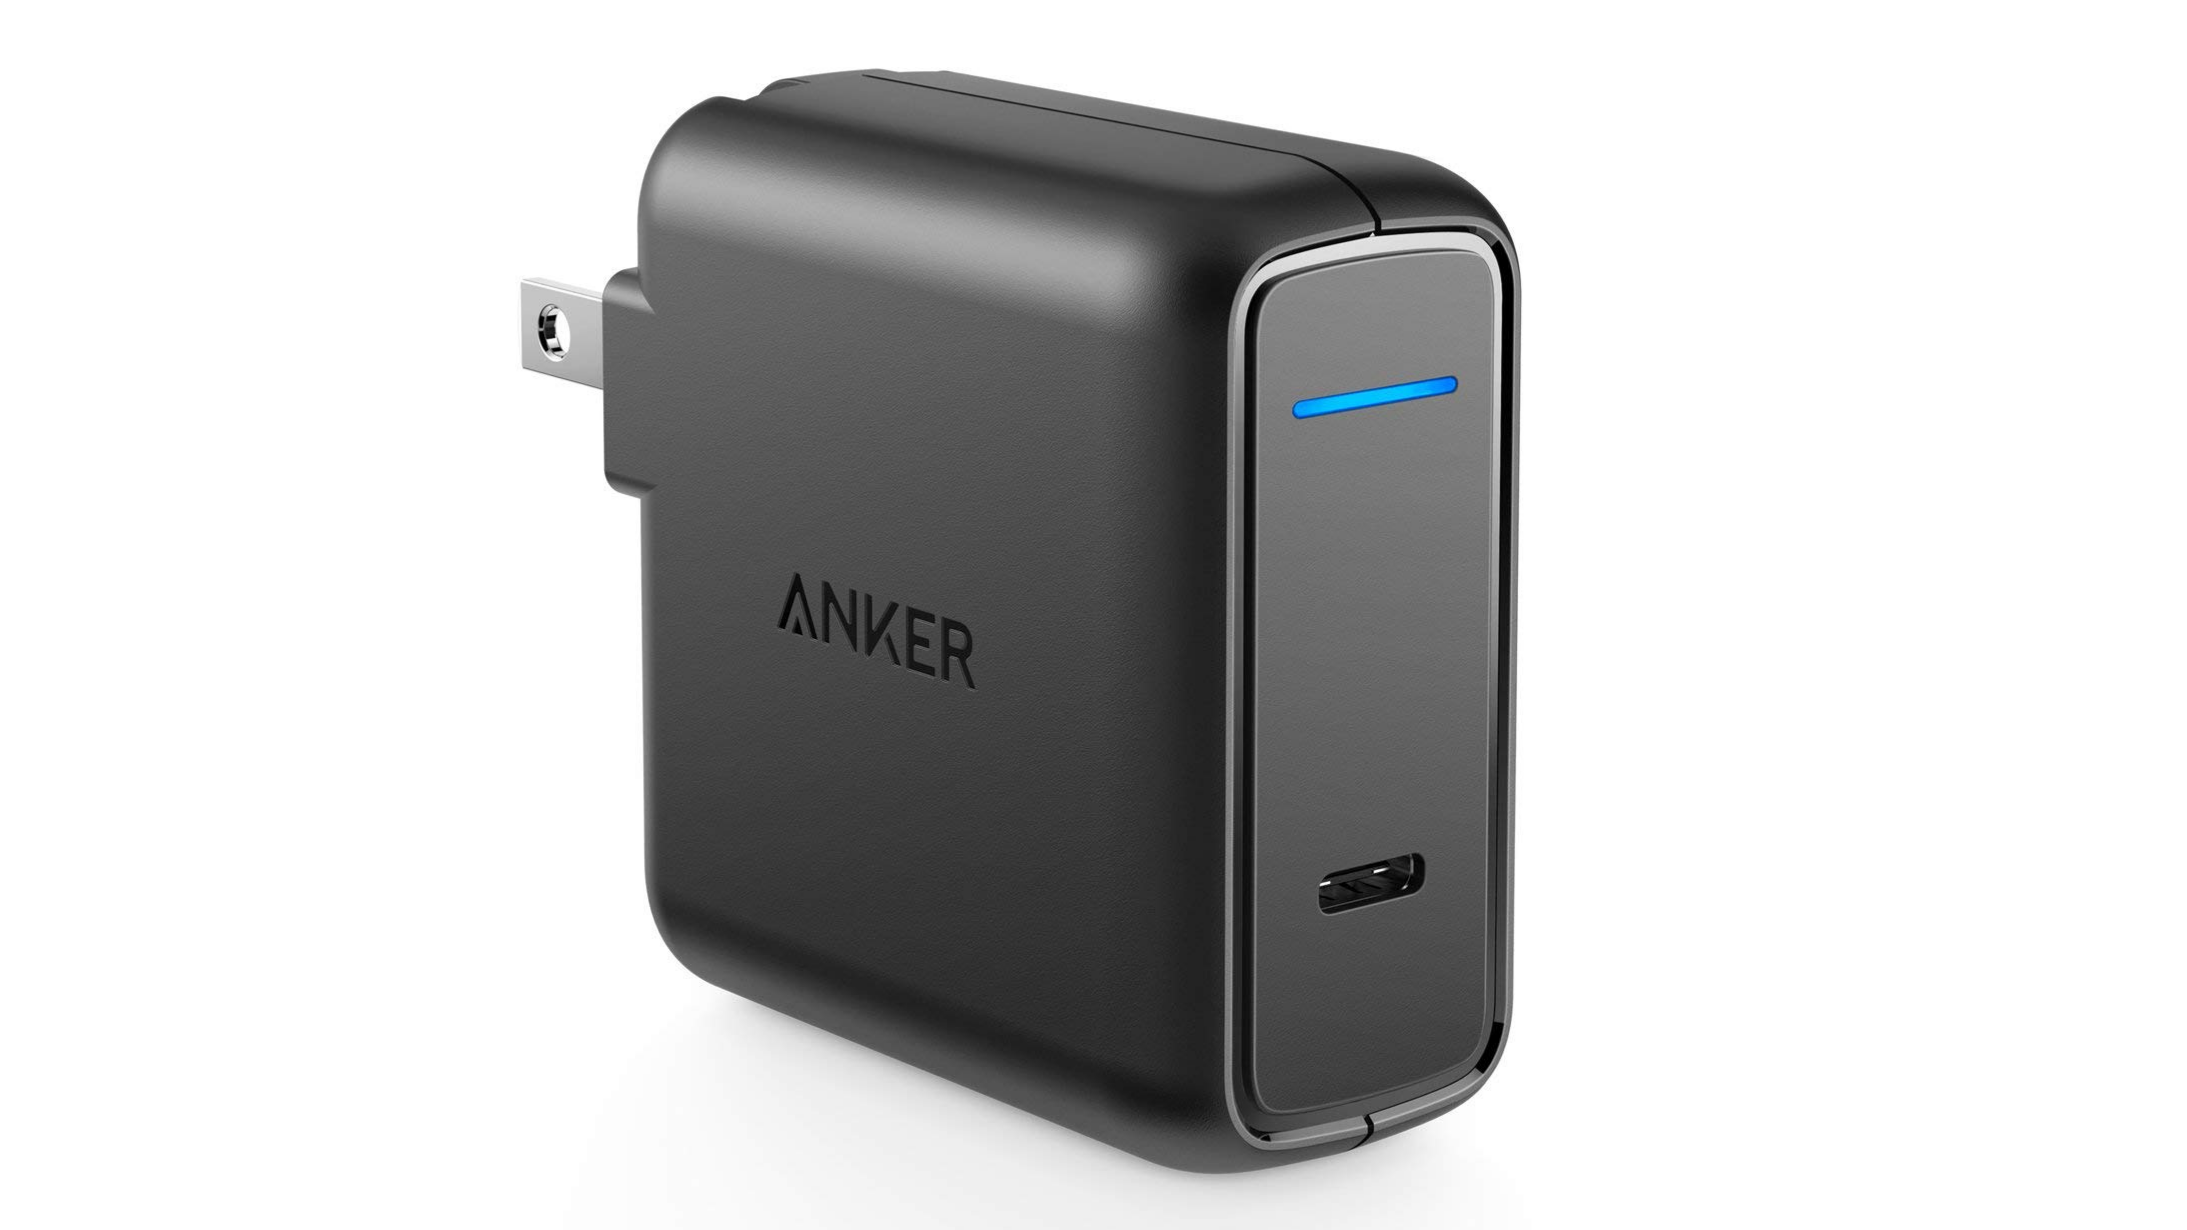 Pick up Anker's 30W USB-C charger for $18 ($8 off) and keep all your gadgets juiced up on the cheap